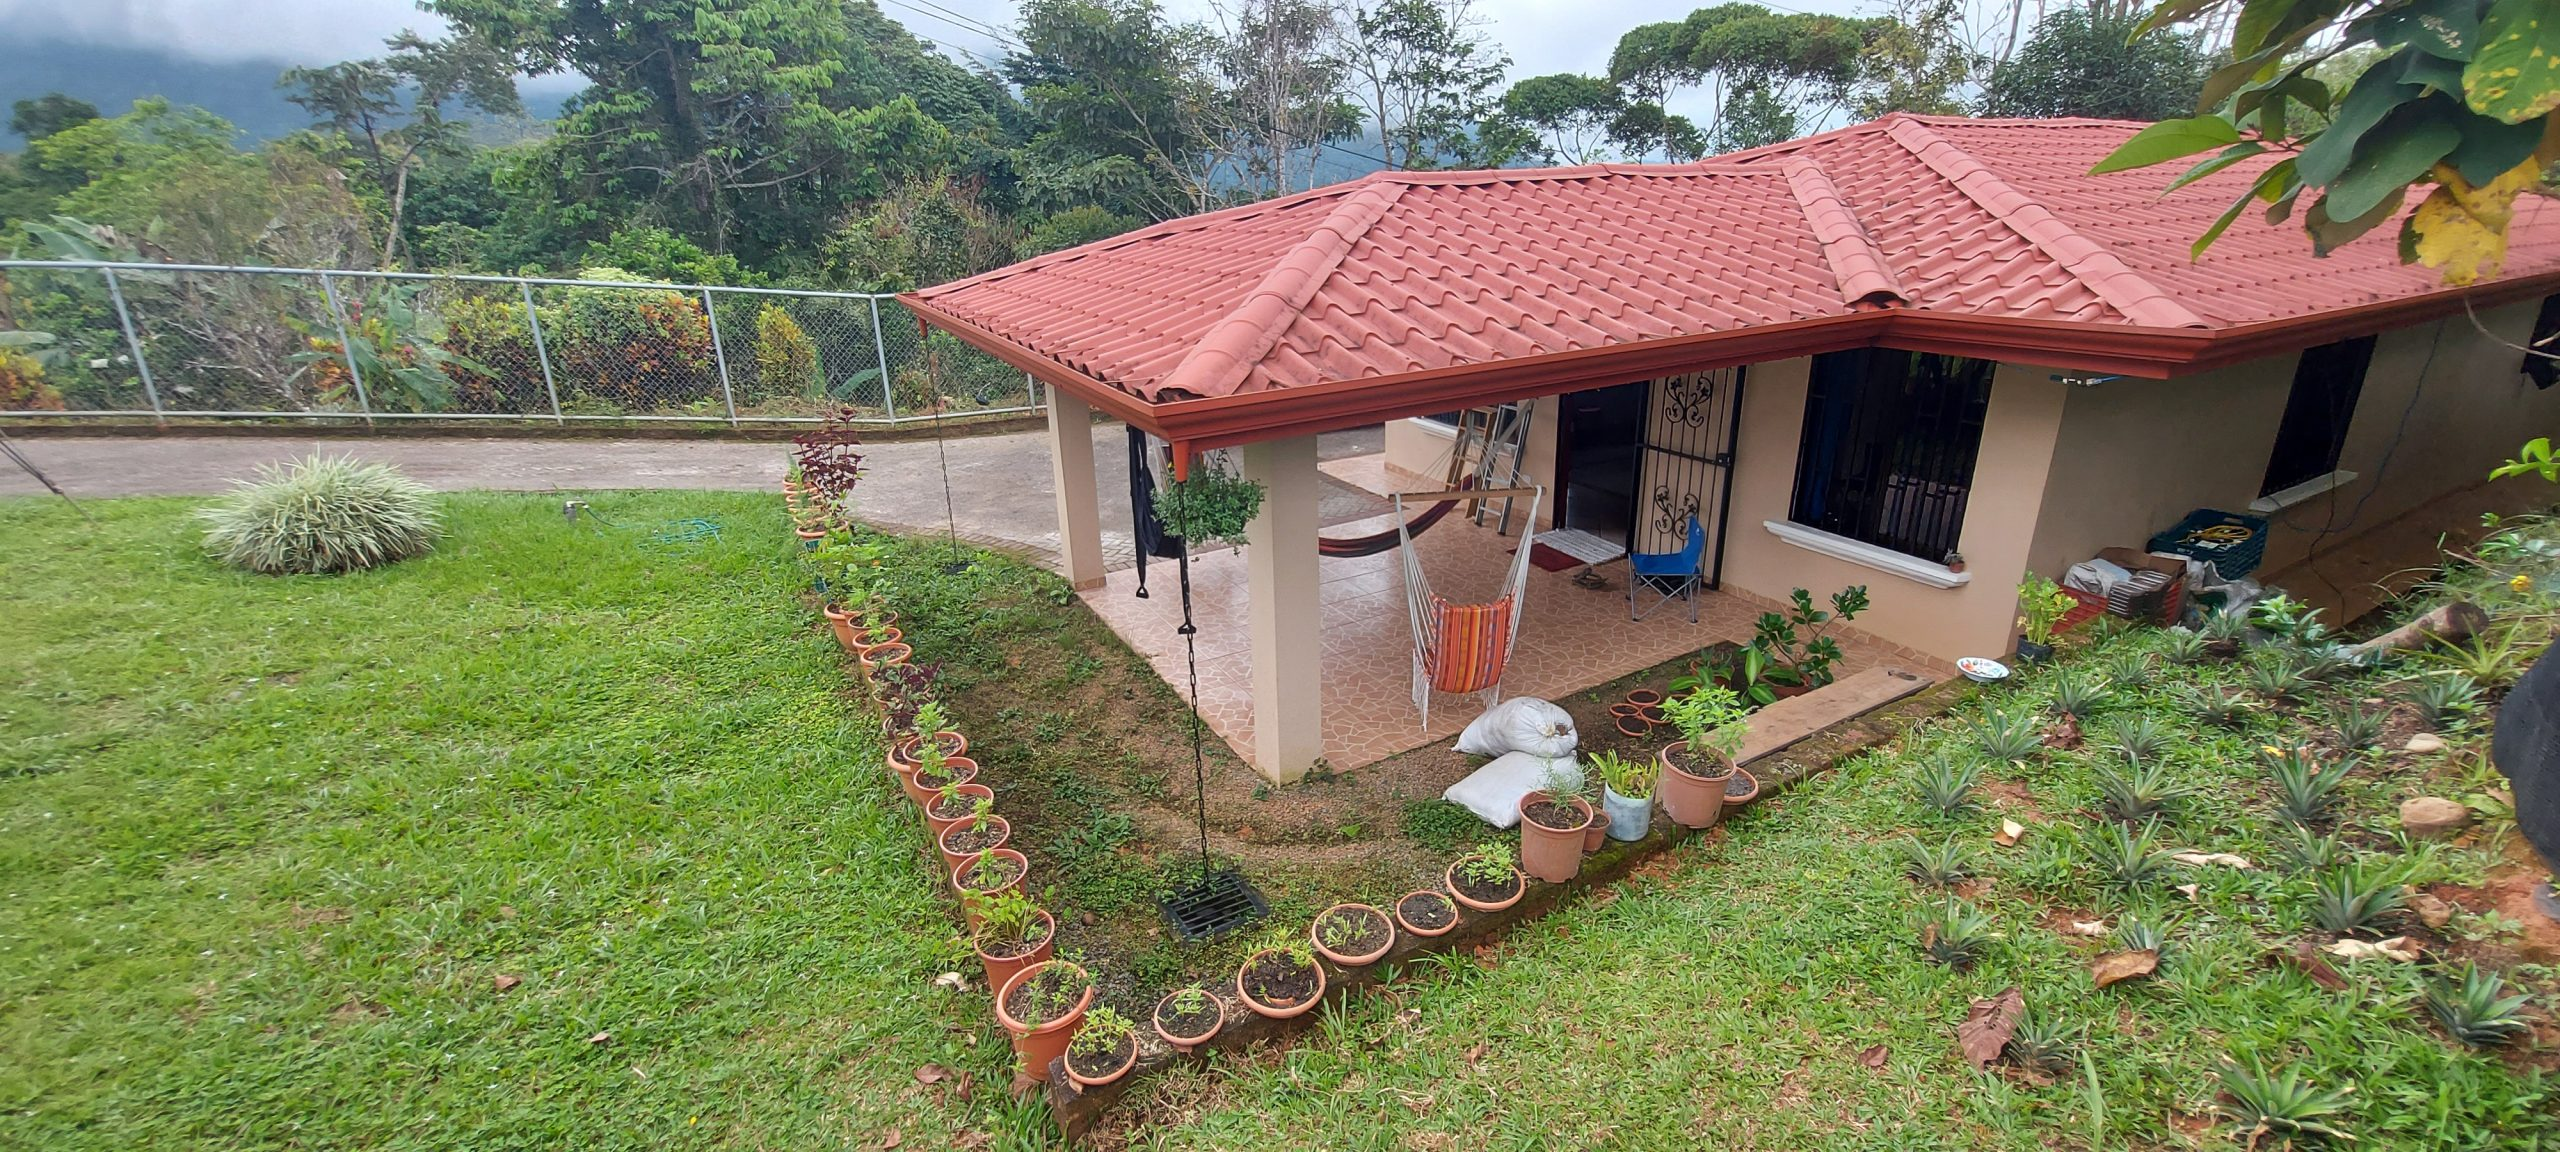 Beautiful house with farm for cultivation or development in Tinamastes, Baru